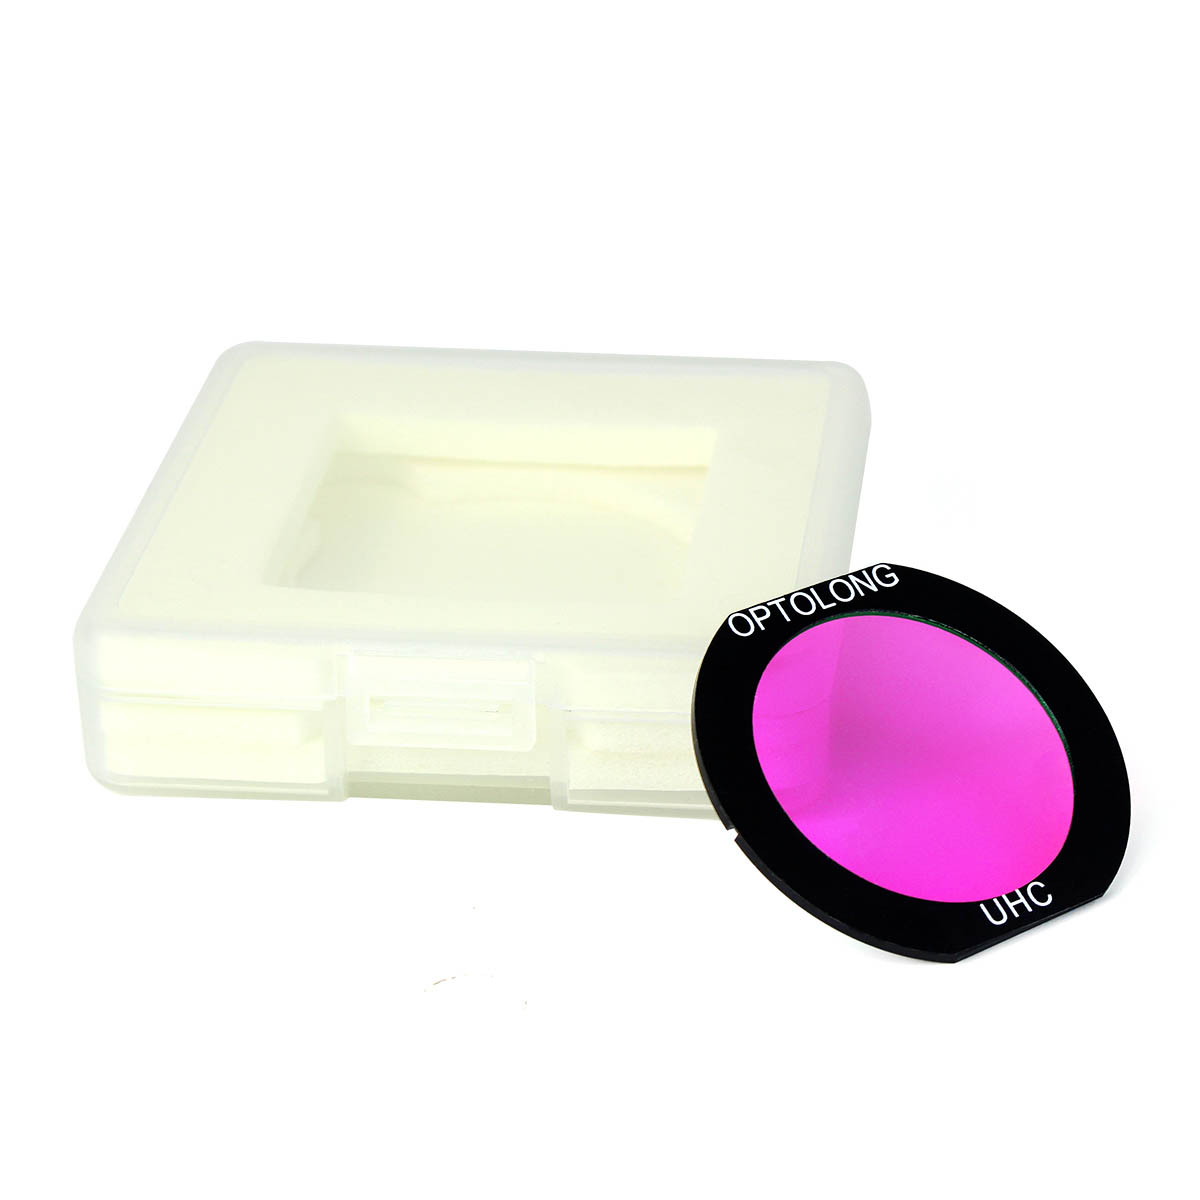 Optolong EOS-C clip filter UHC light depression filter